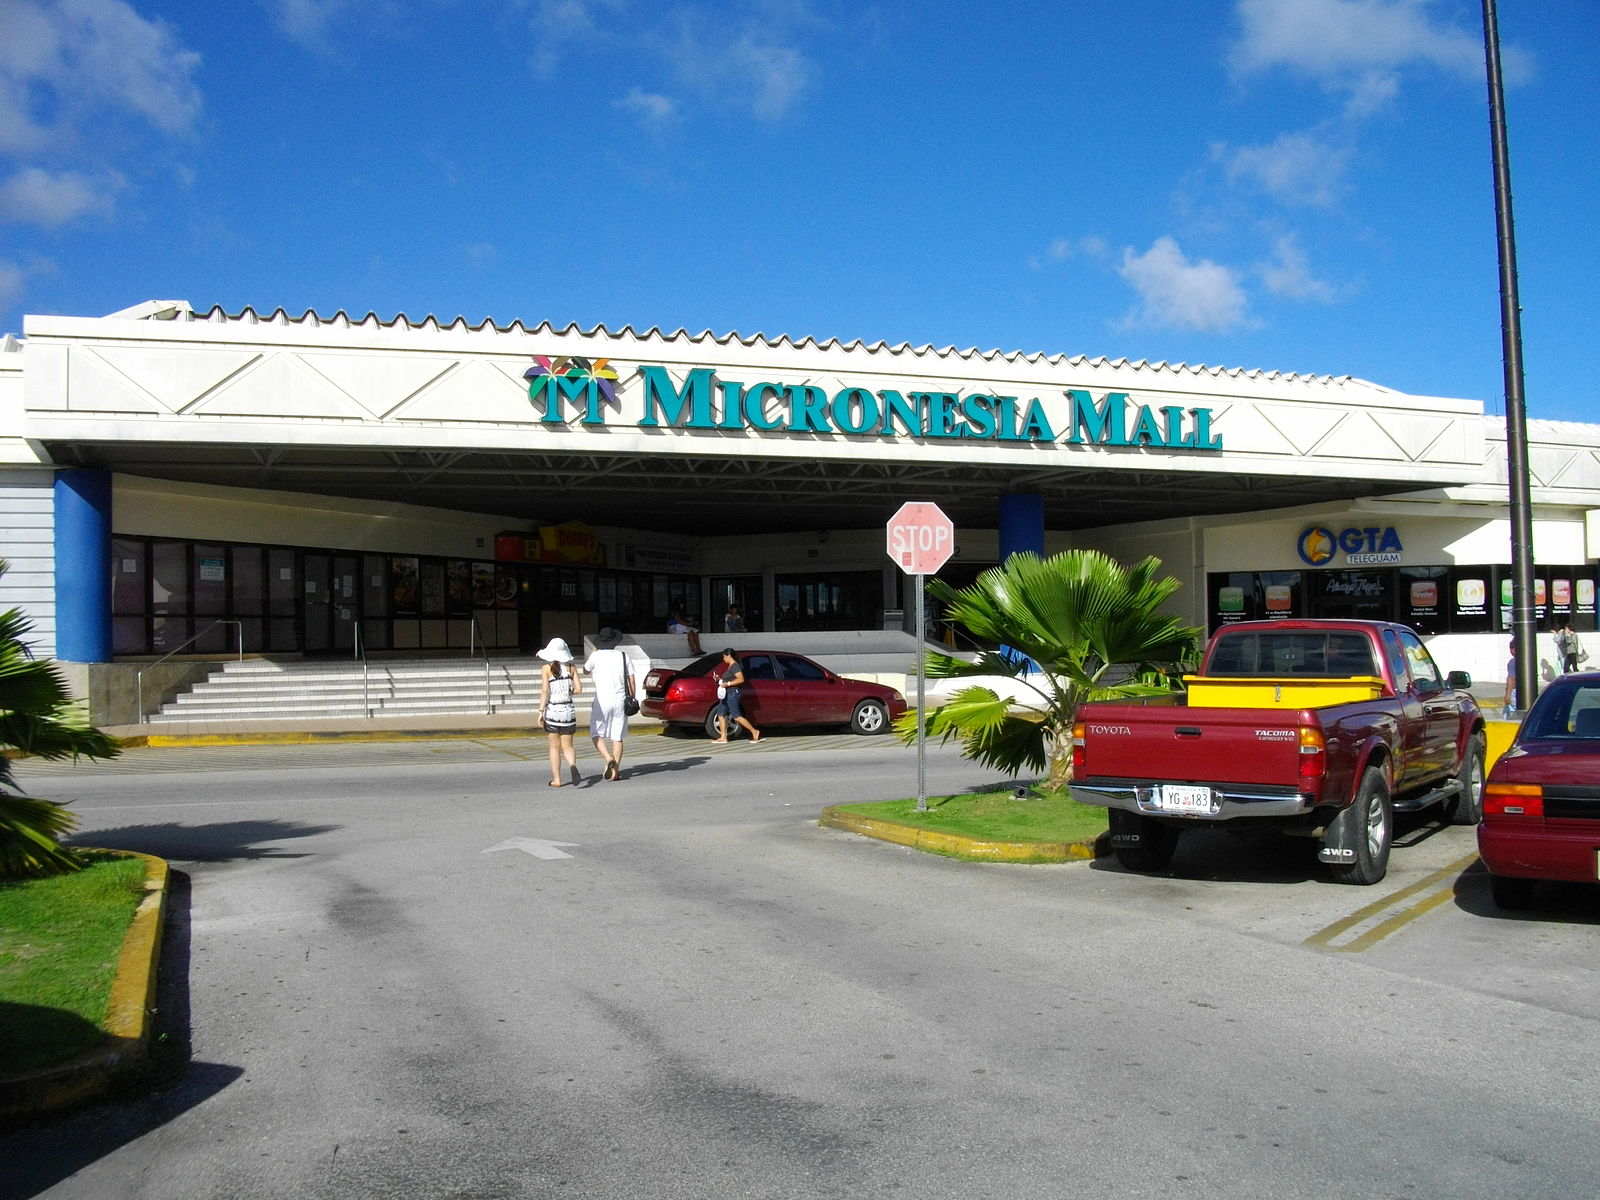 Tango Theatres - Micronesia Mall, Dededo movie times and showtimes. Movie theater information and online movie tickets/5(3).